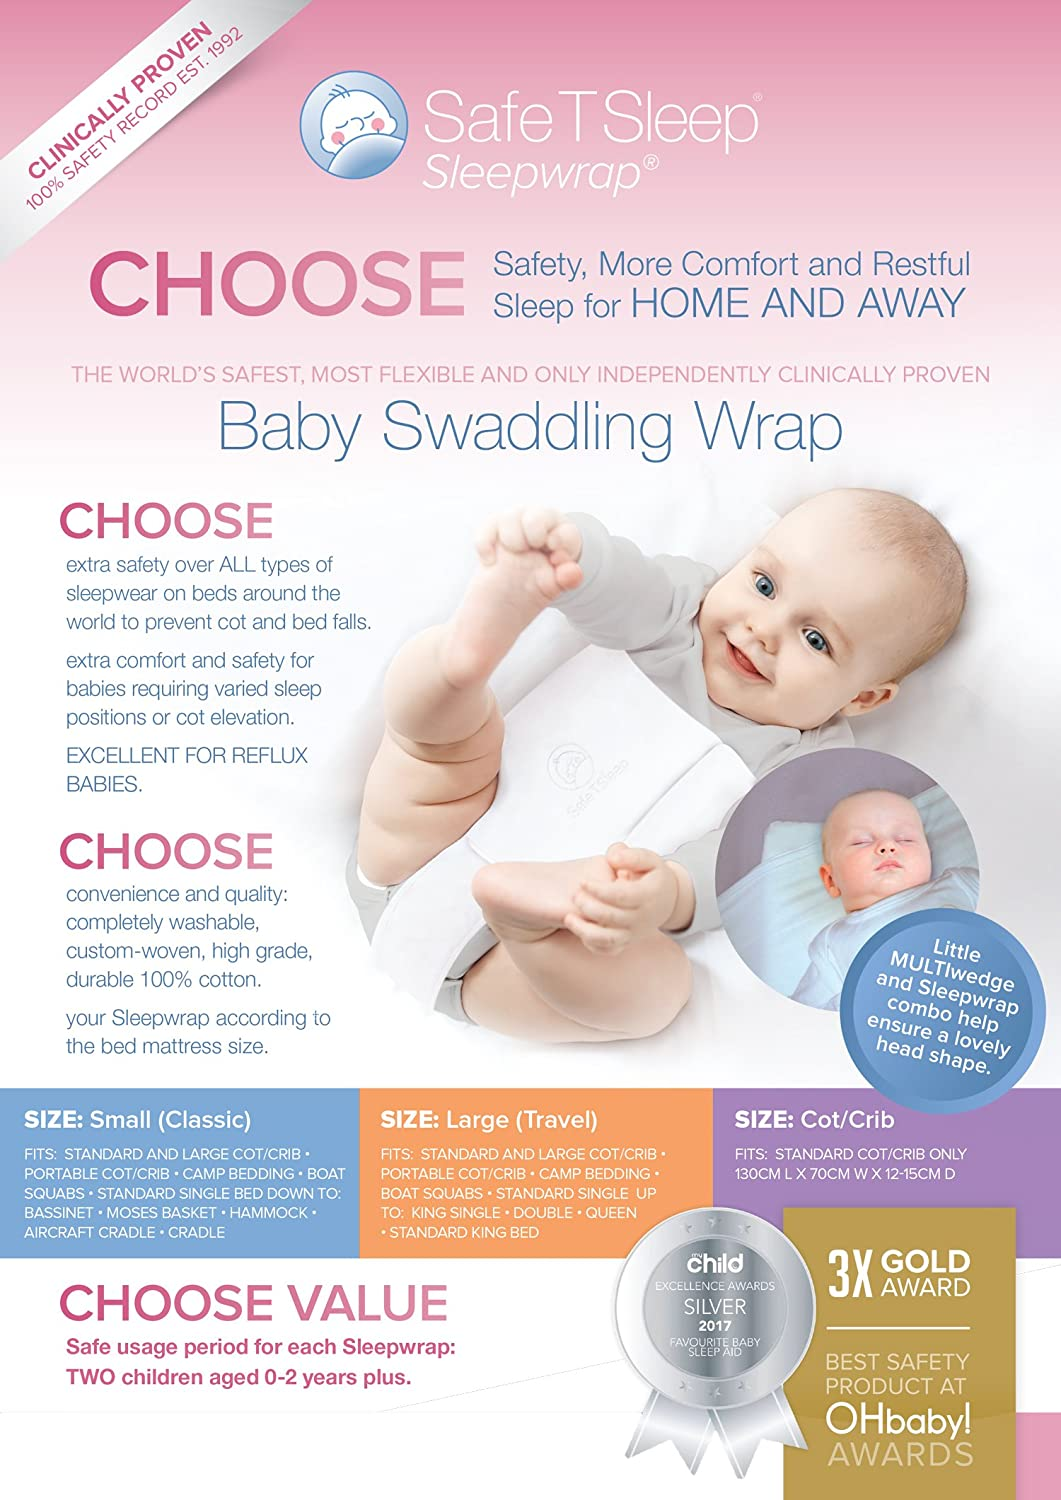 0b003cd17 Amazon.com  Safe T Sleep Sleepwrap Babywrap Swaddle   CLASSIC  Model ...